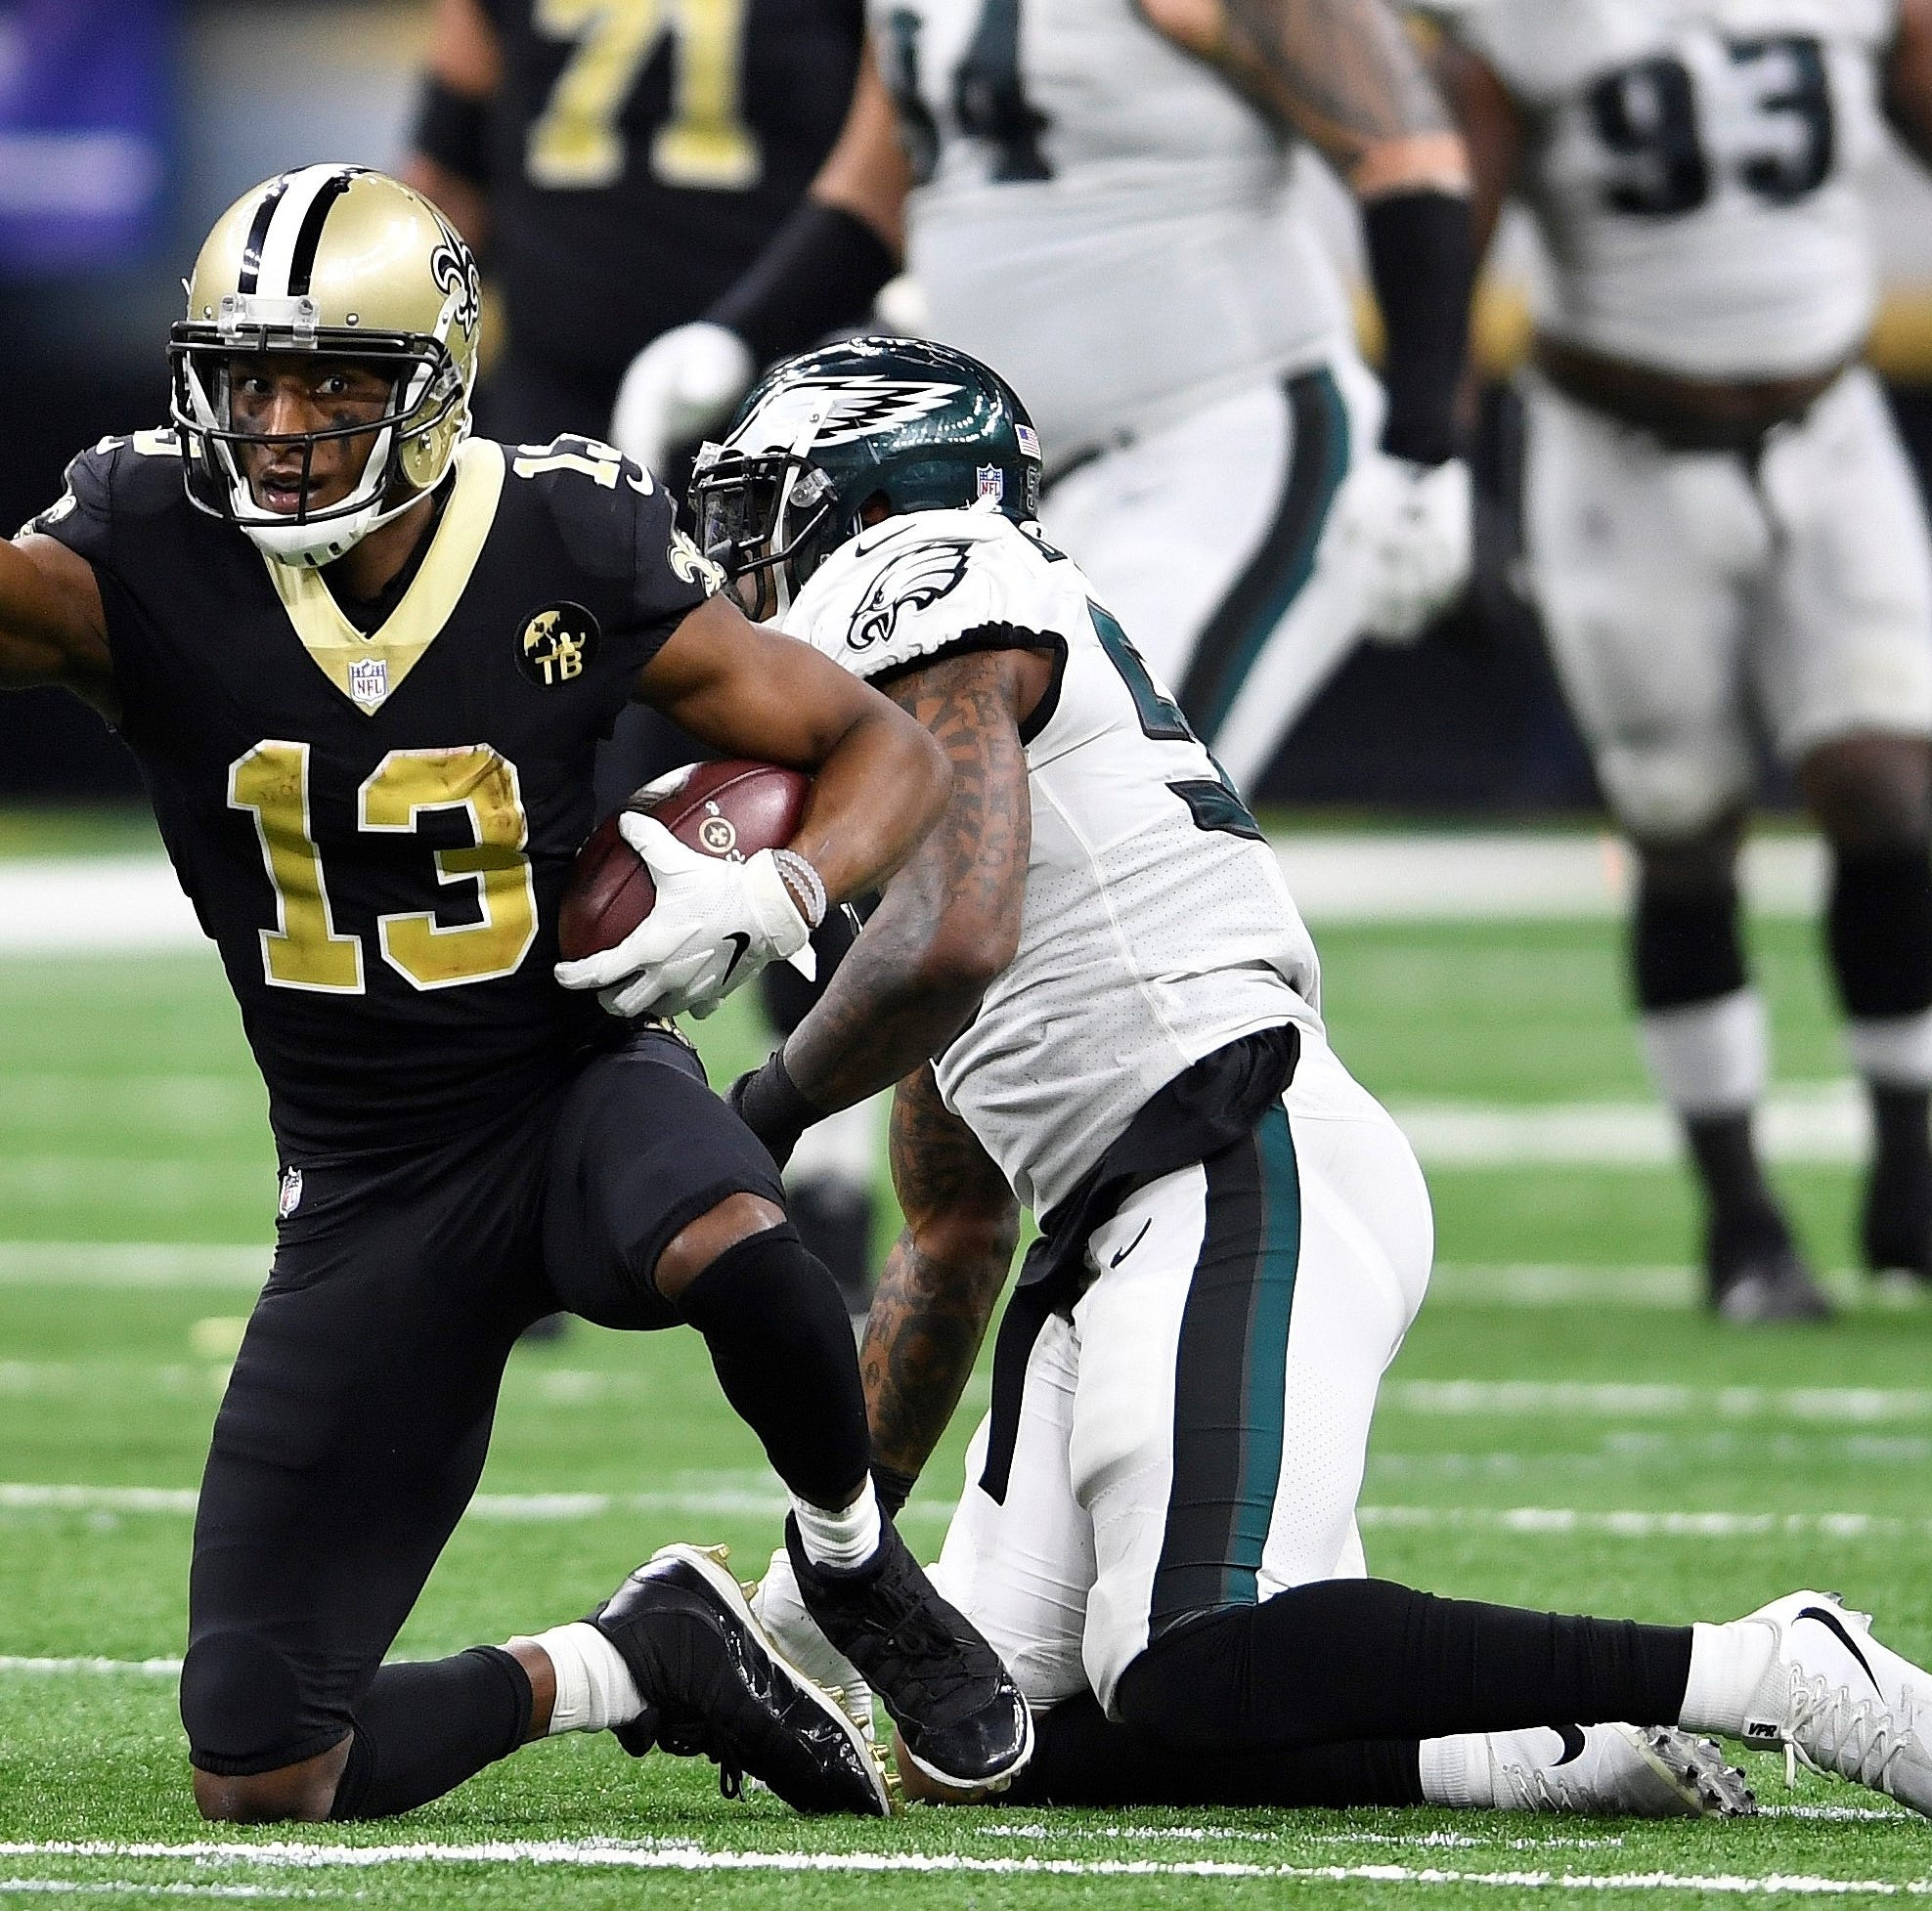 After sizzling start, Philadelphia Eagles fizzle in NFC playoff loss to New Orleans Saints